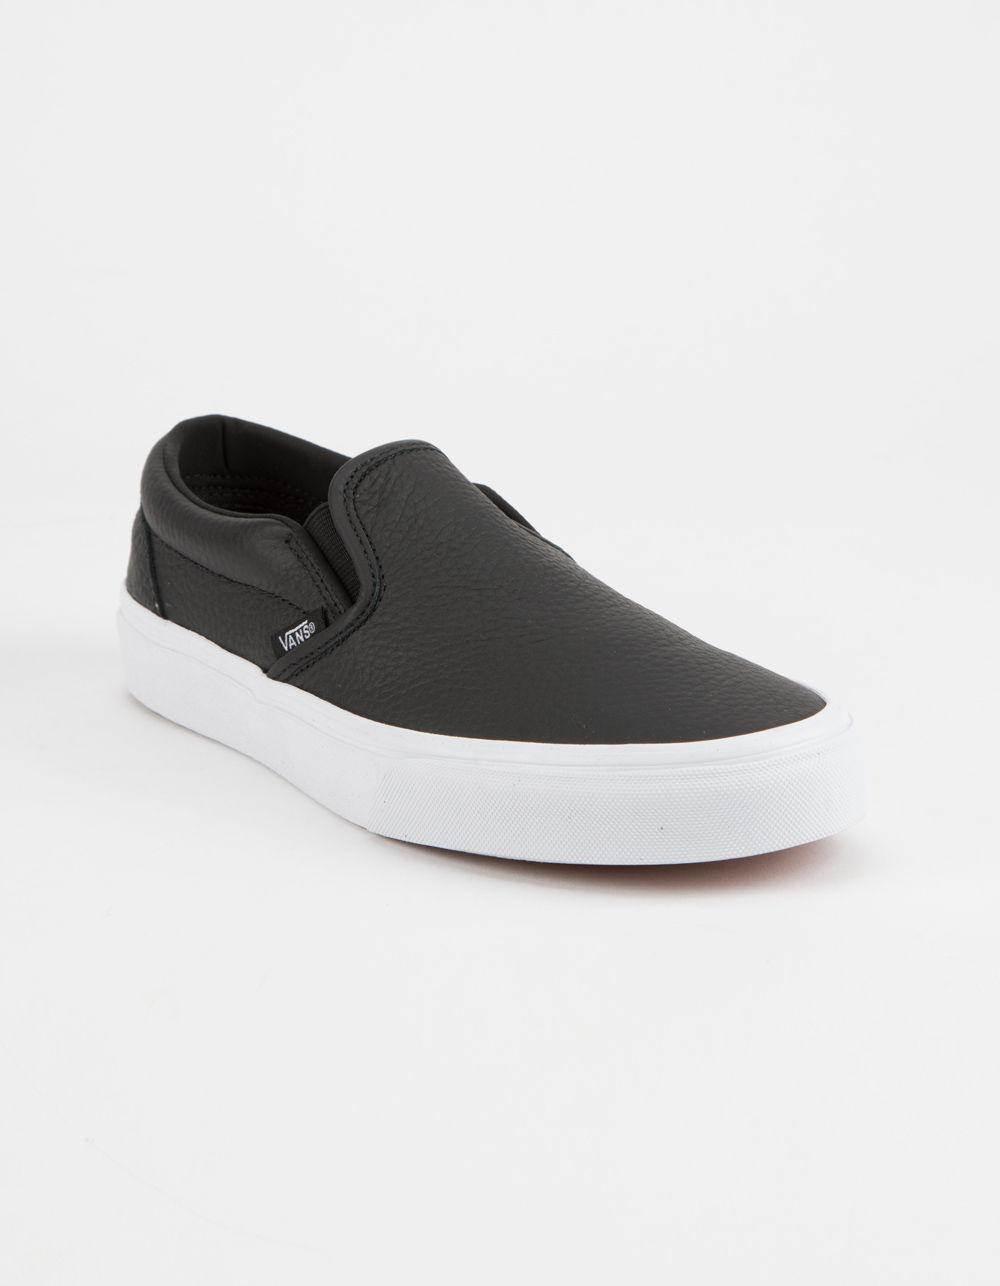 Lyst - Vans Tumble Leather Black   True White Classic Slip-on Womens Shoes  in Black 1f6631751